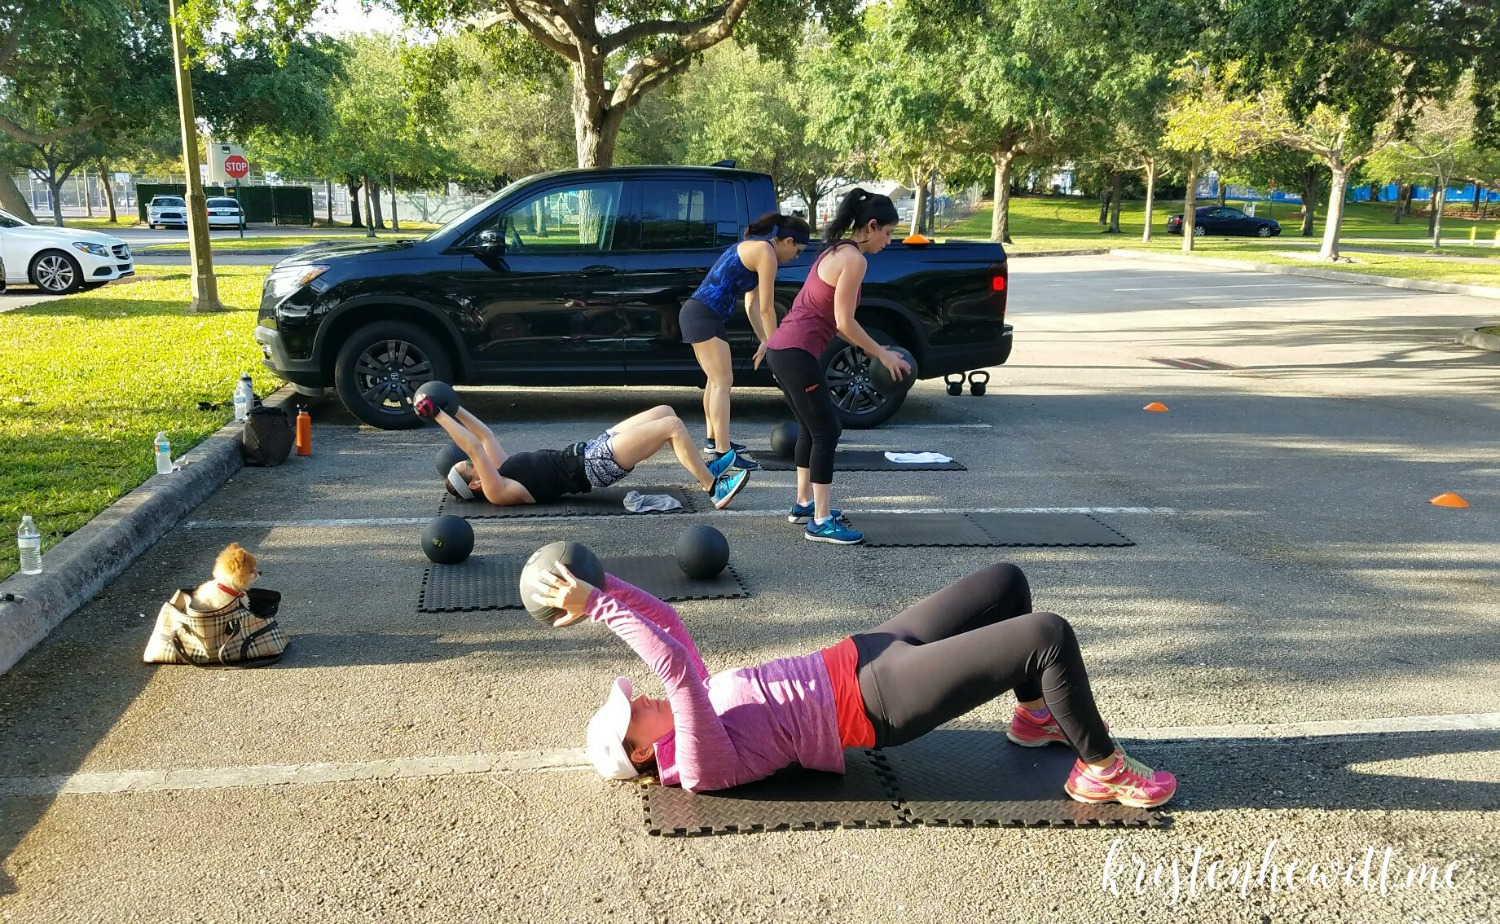 Do you want to get fit but loathe working out? Here are 7 tips to jumpstart your fitness routine and actually enjoy exercise!